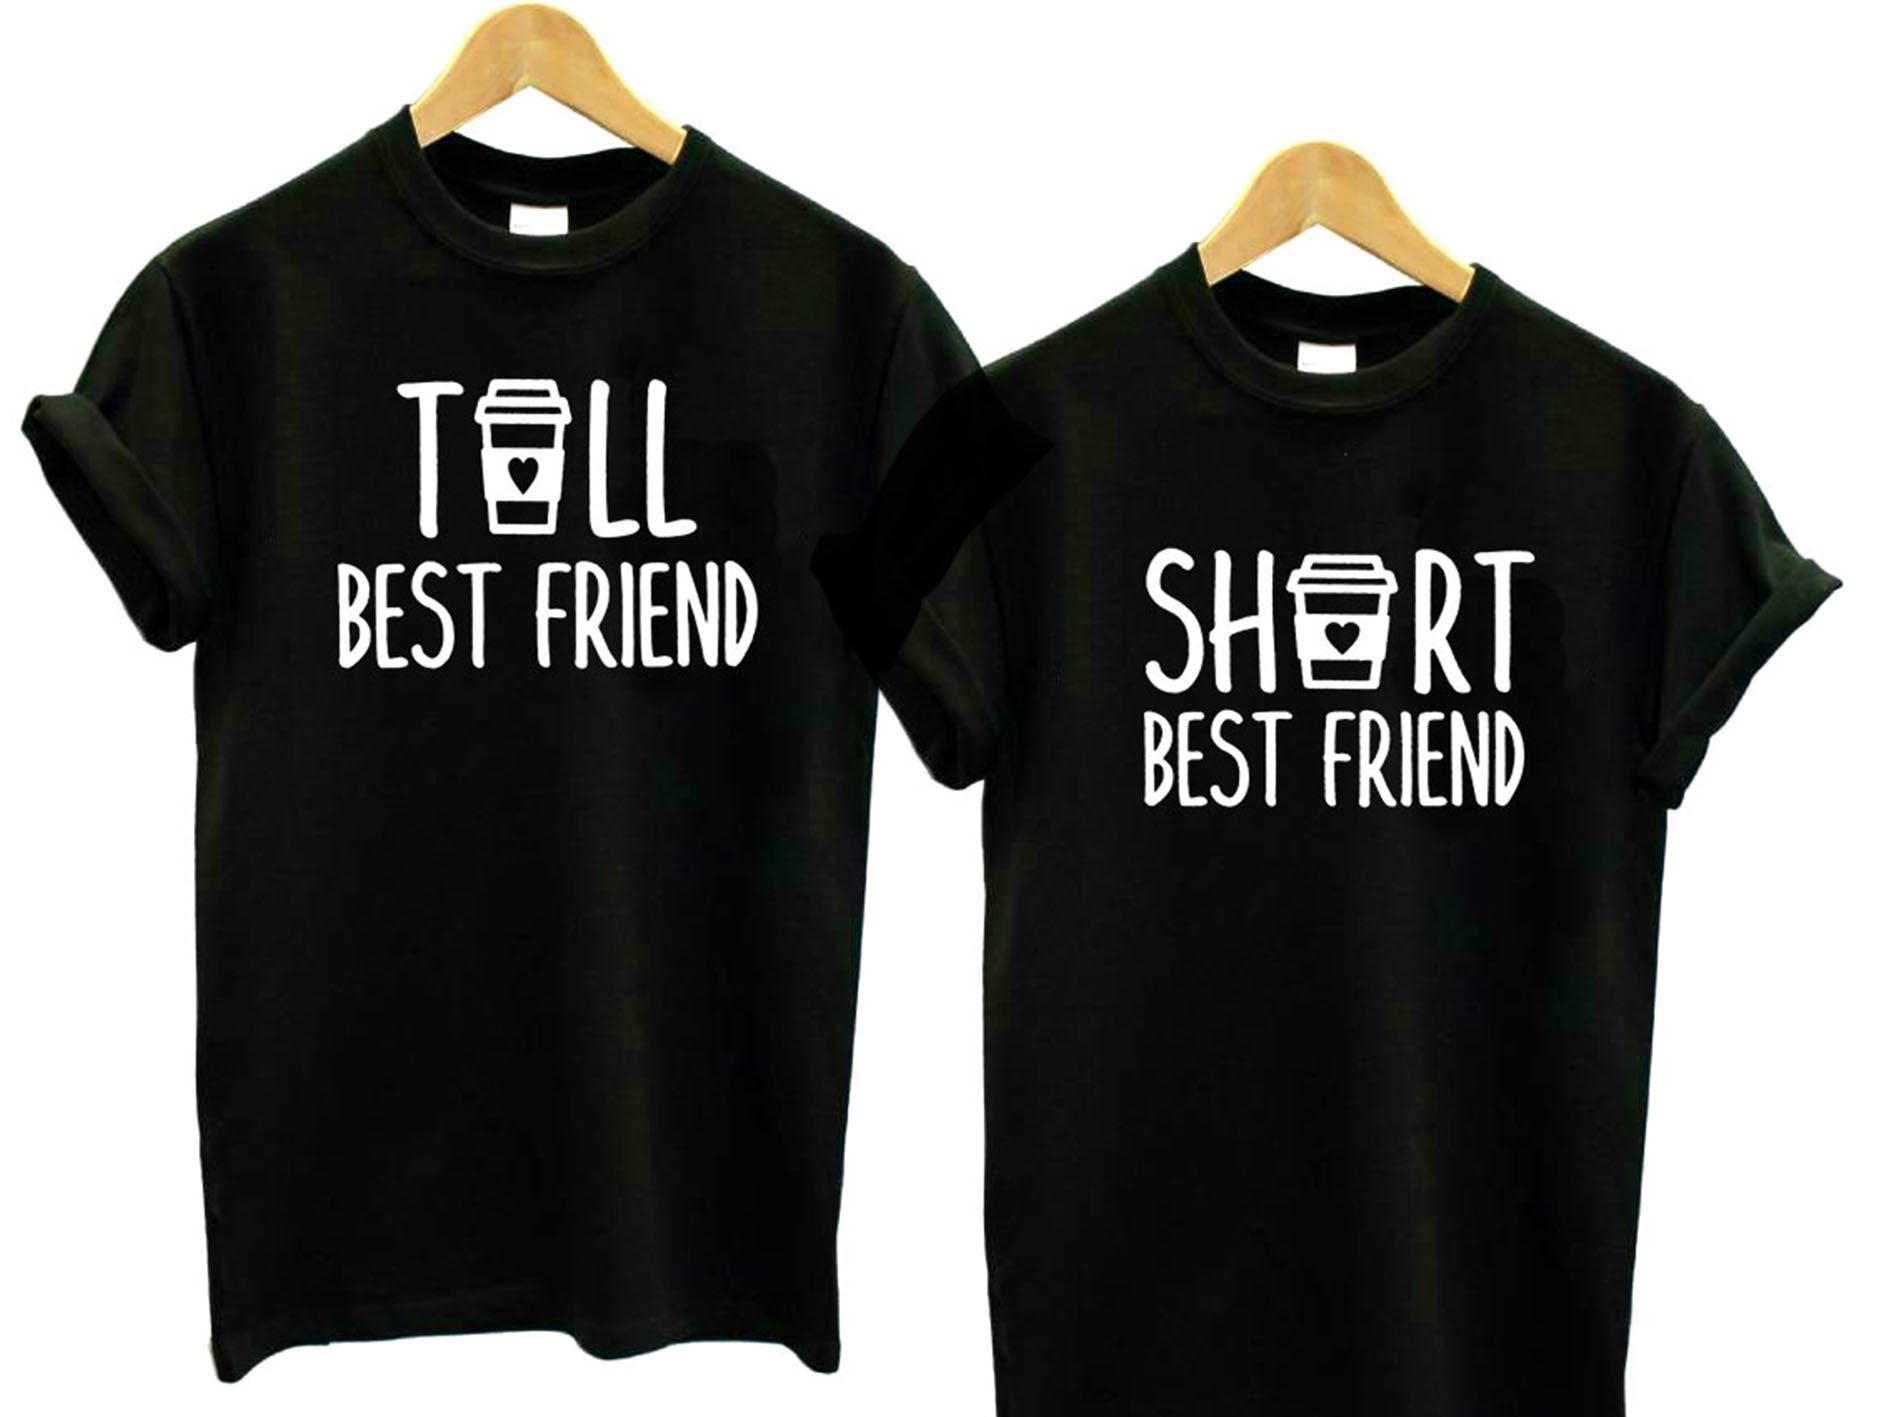 Tall And Short Best Friend Gift Women Tshirt Cotton Casual Funny T Shirt For Lady Yong Girl Top Tee Hipster Drop Ship S-439